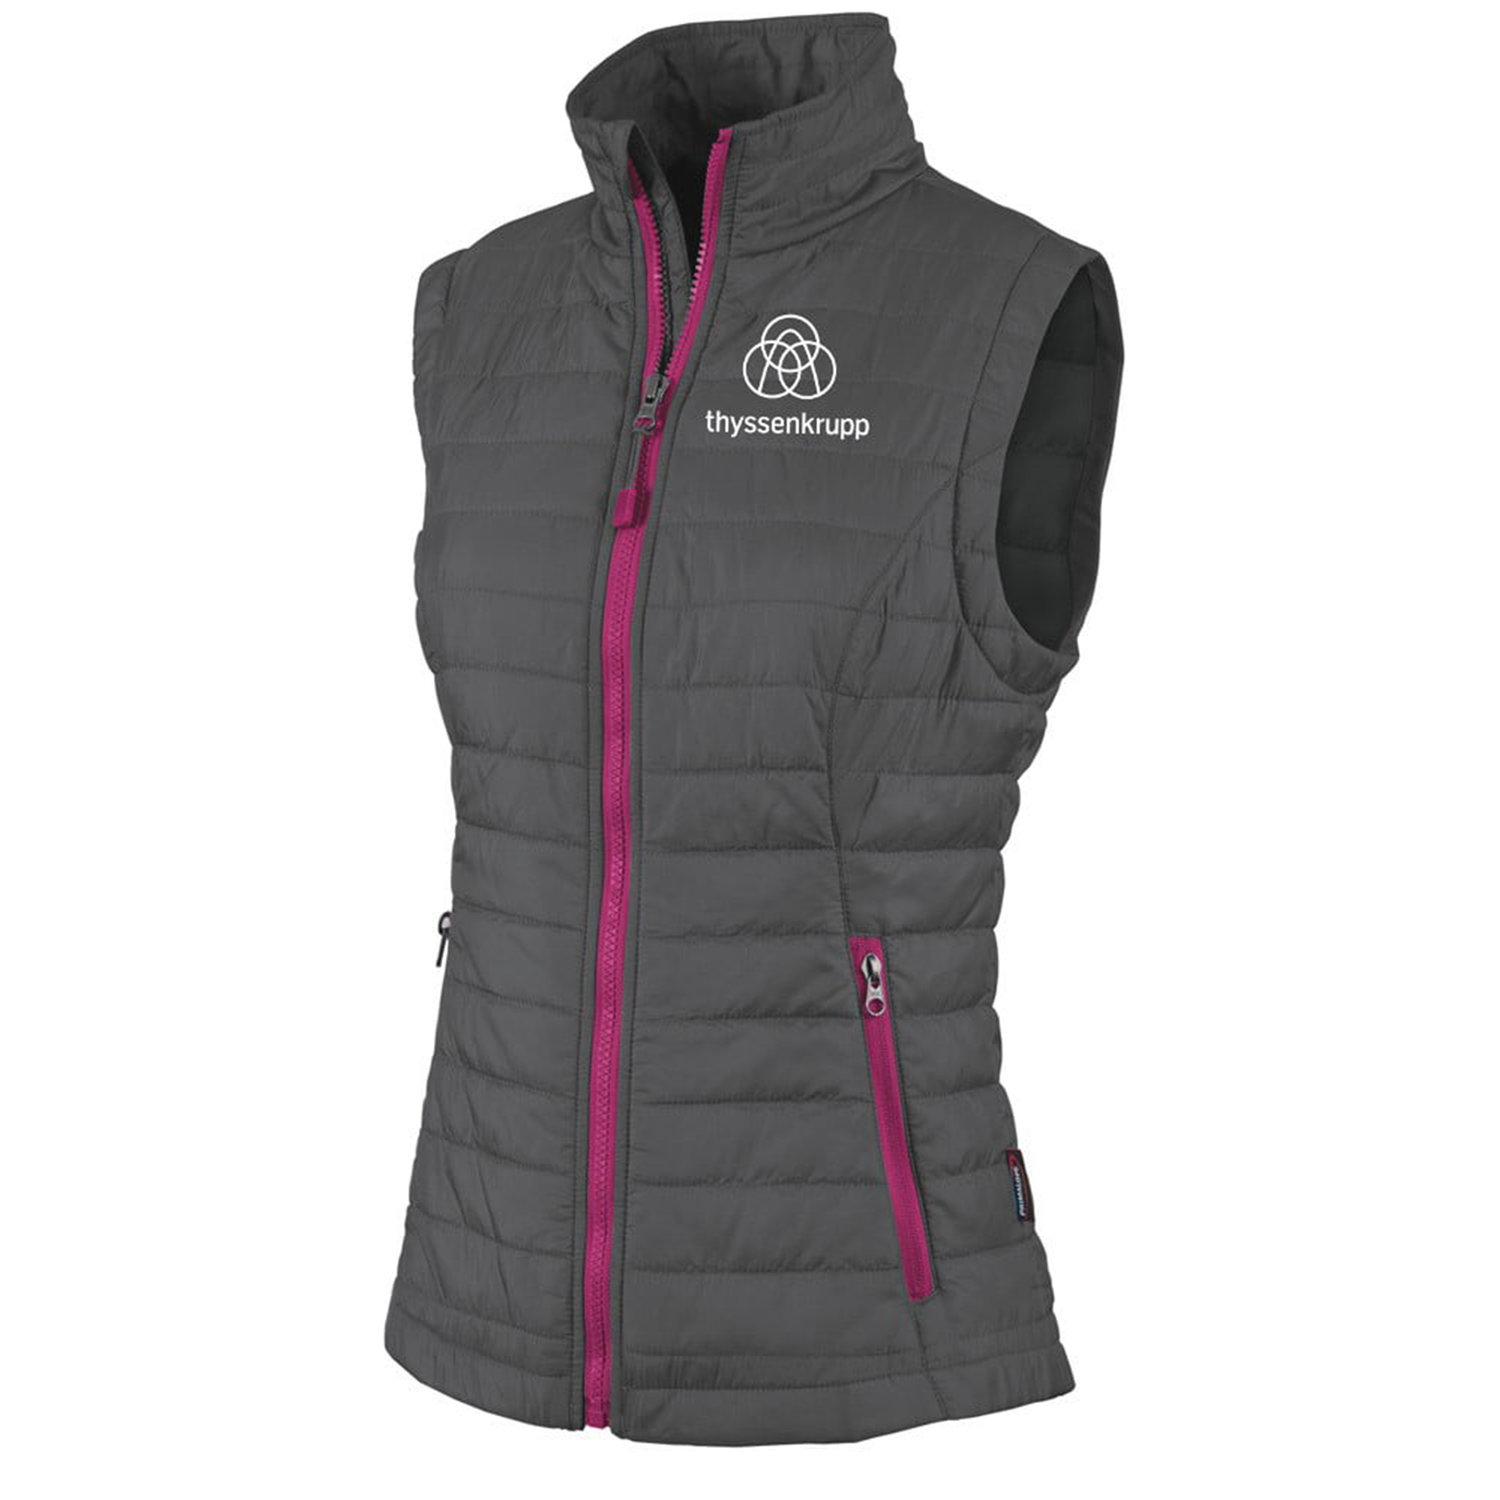 vest gold walmart ip zipper quilt s with concepts women climate puffer com quilted